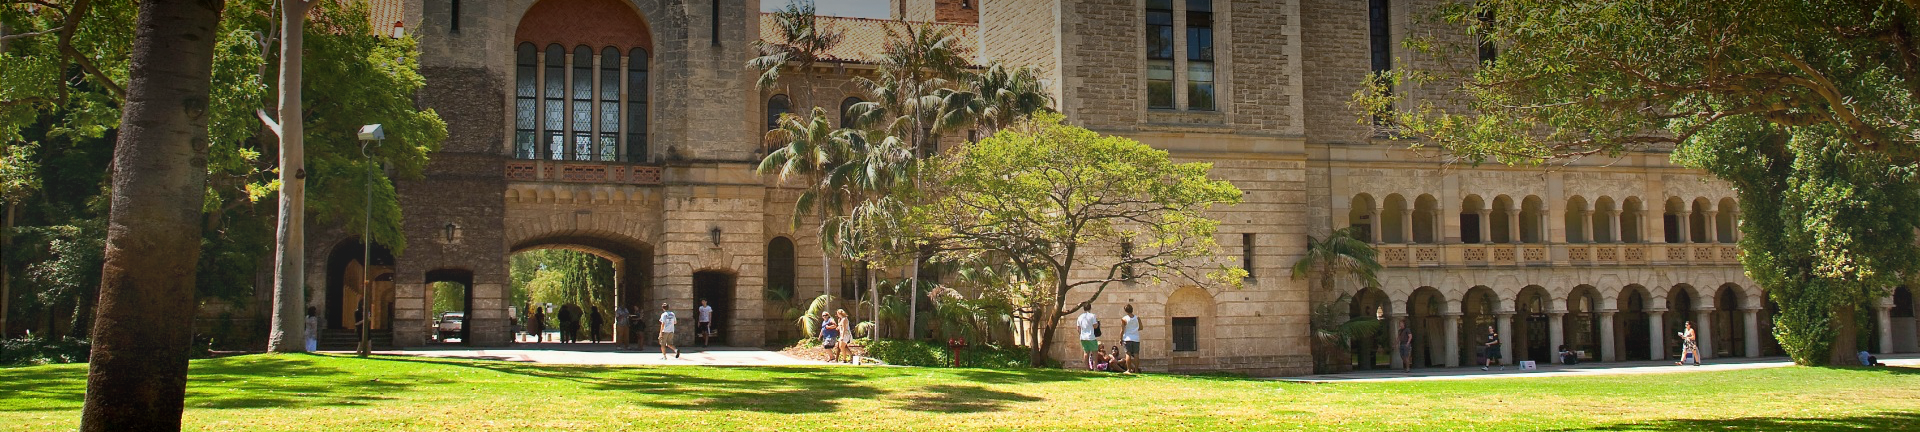 Campus and quad view with students of the University of Western Australia